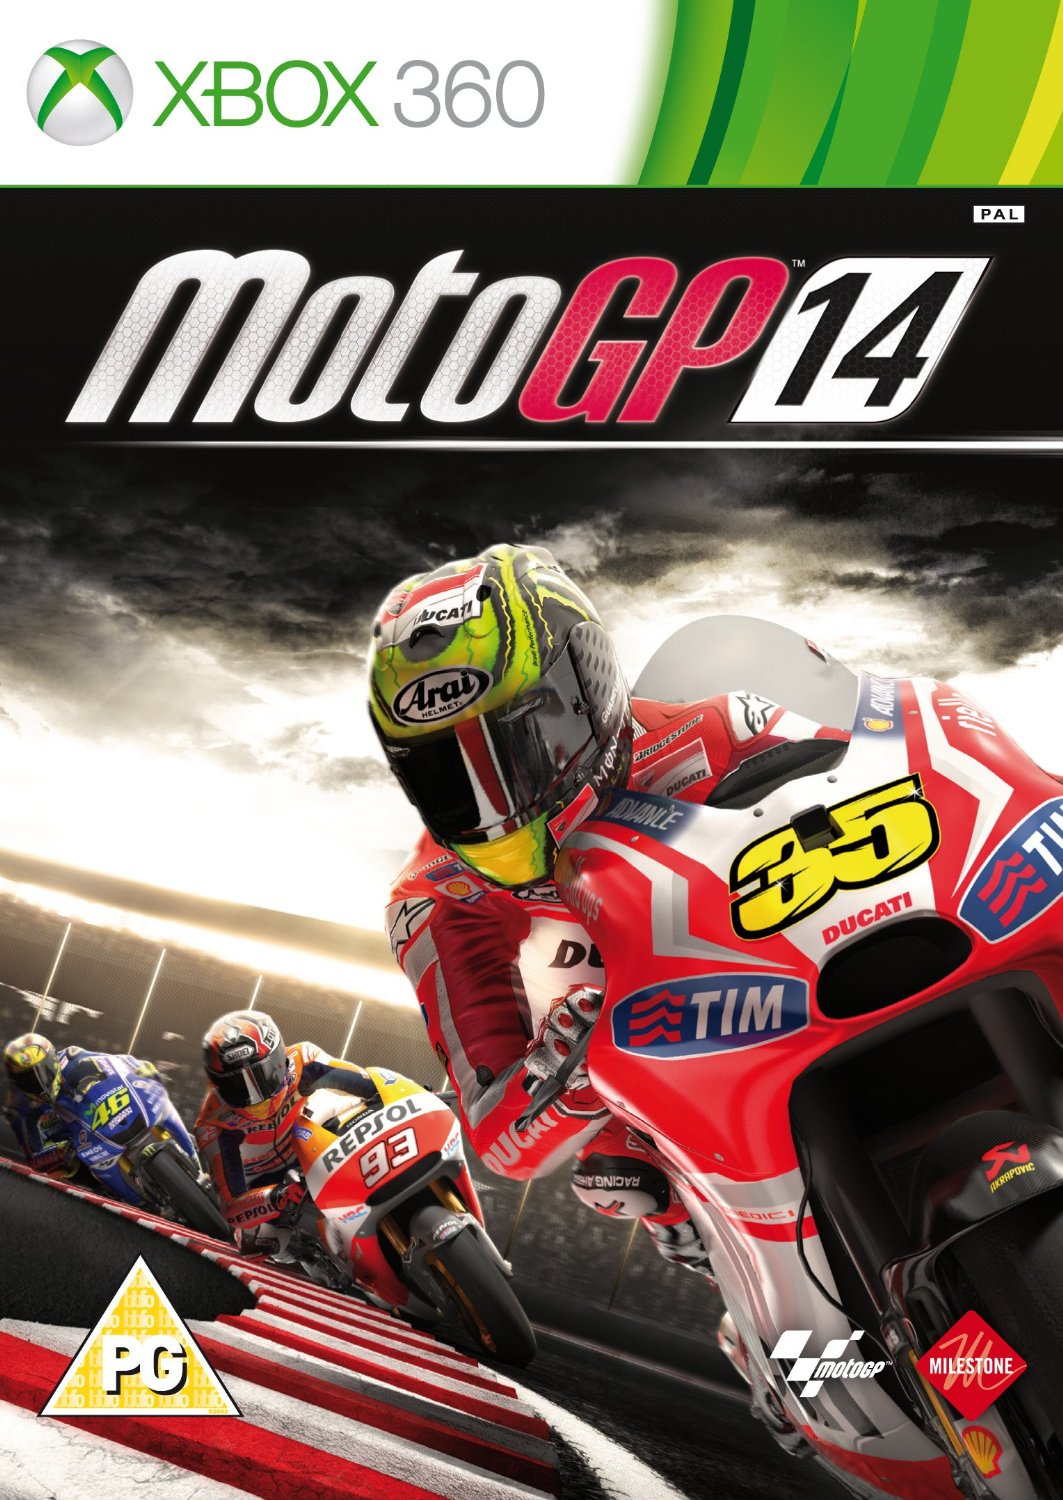 https://rozup.ir/up/narsis3/Pictures/MotoGP-14-xbox360-cover-large.jpg